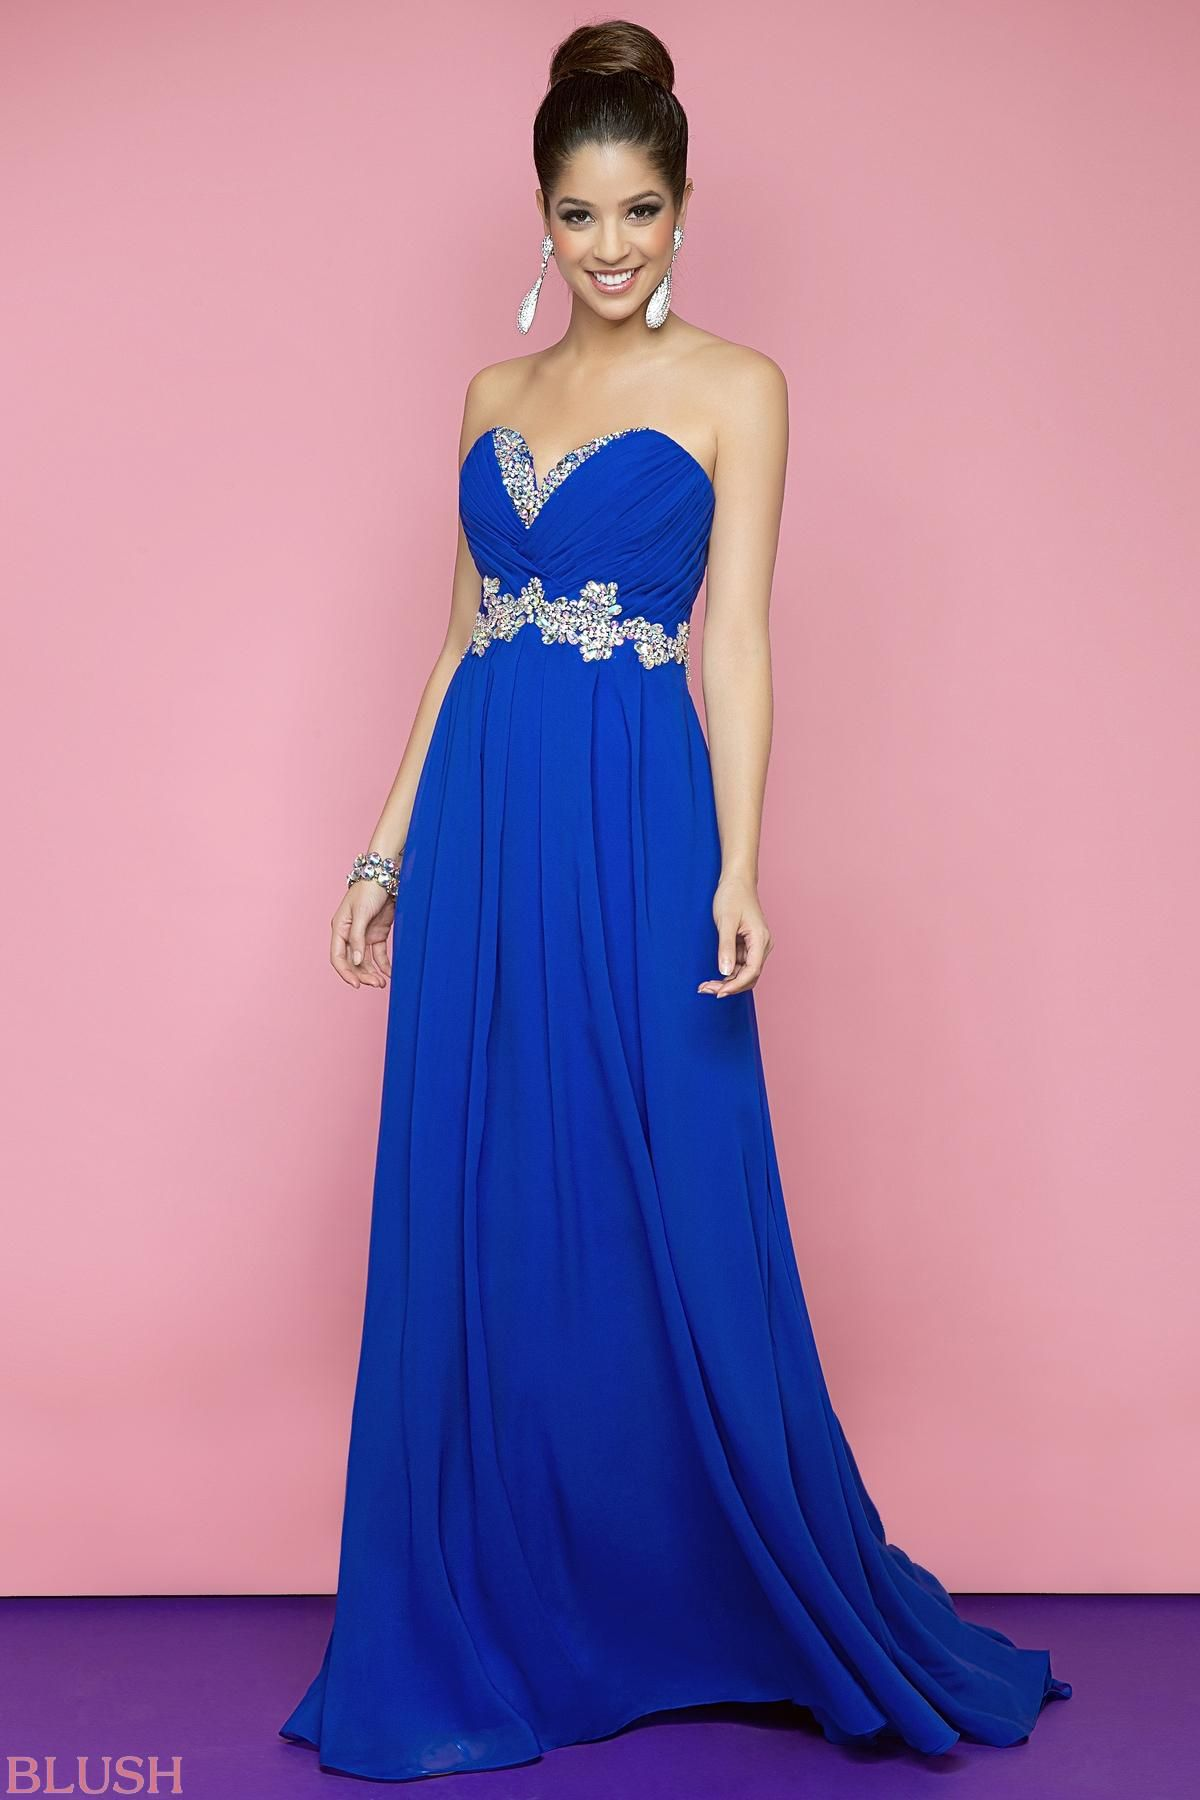 Pin By Yoha Swager On Yoha Itz Waqq Pinterest Prom Jewel And